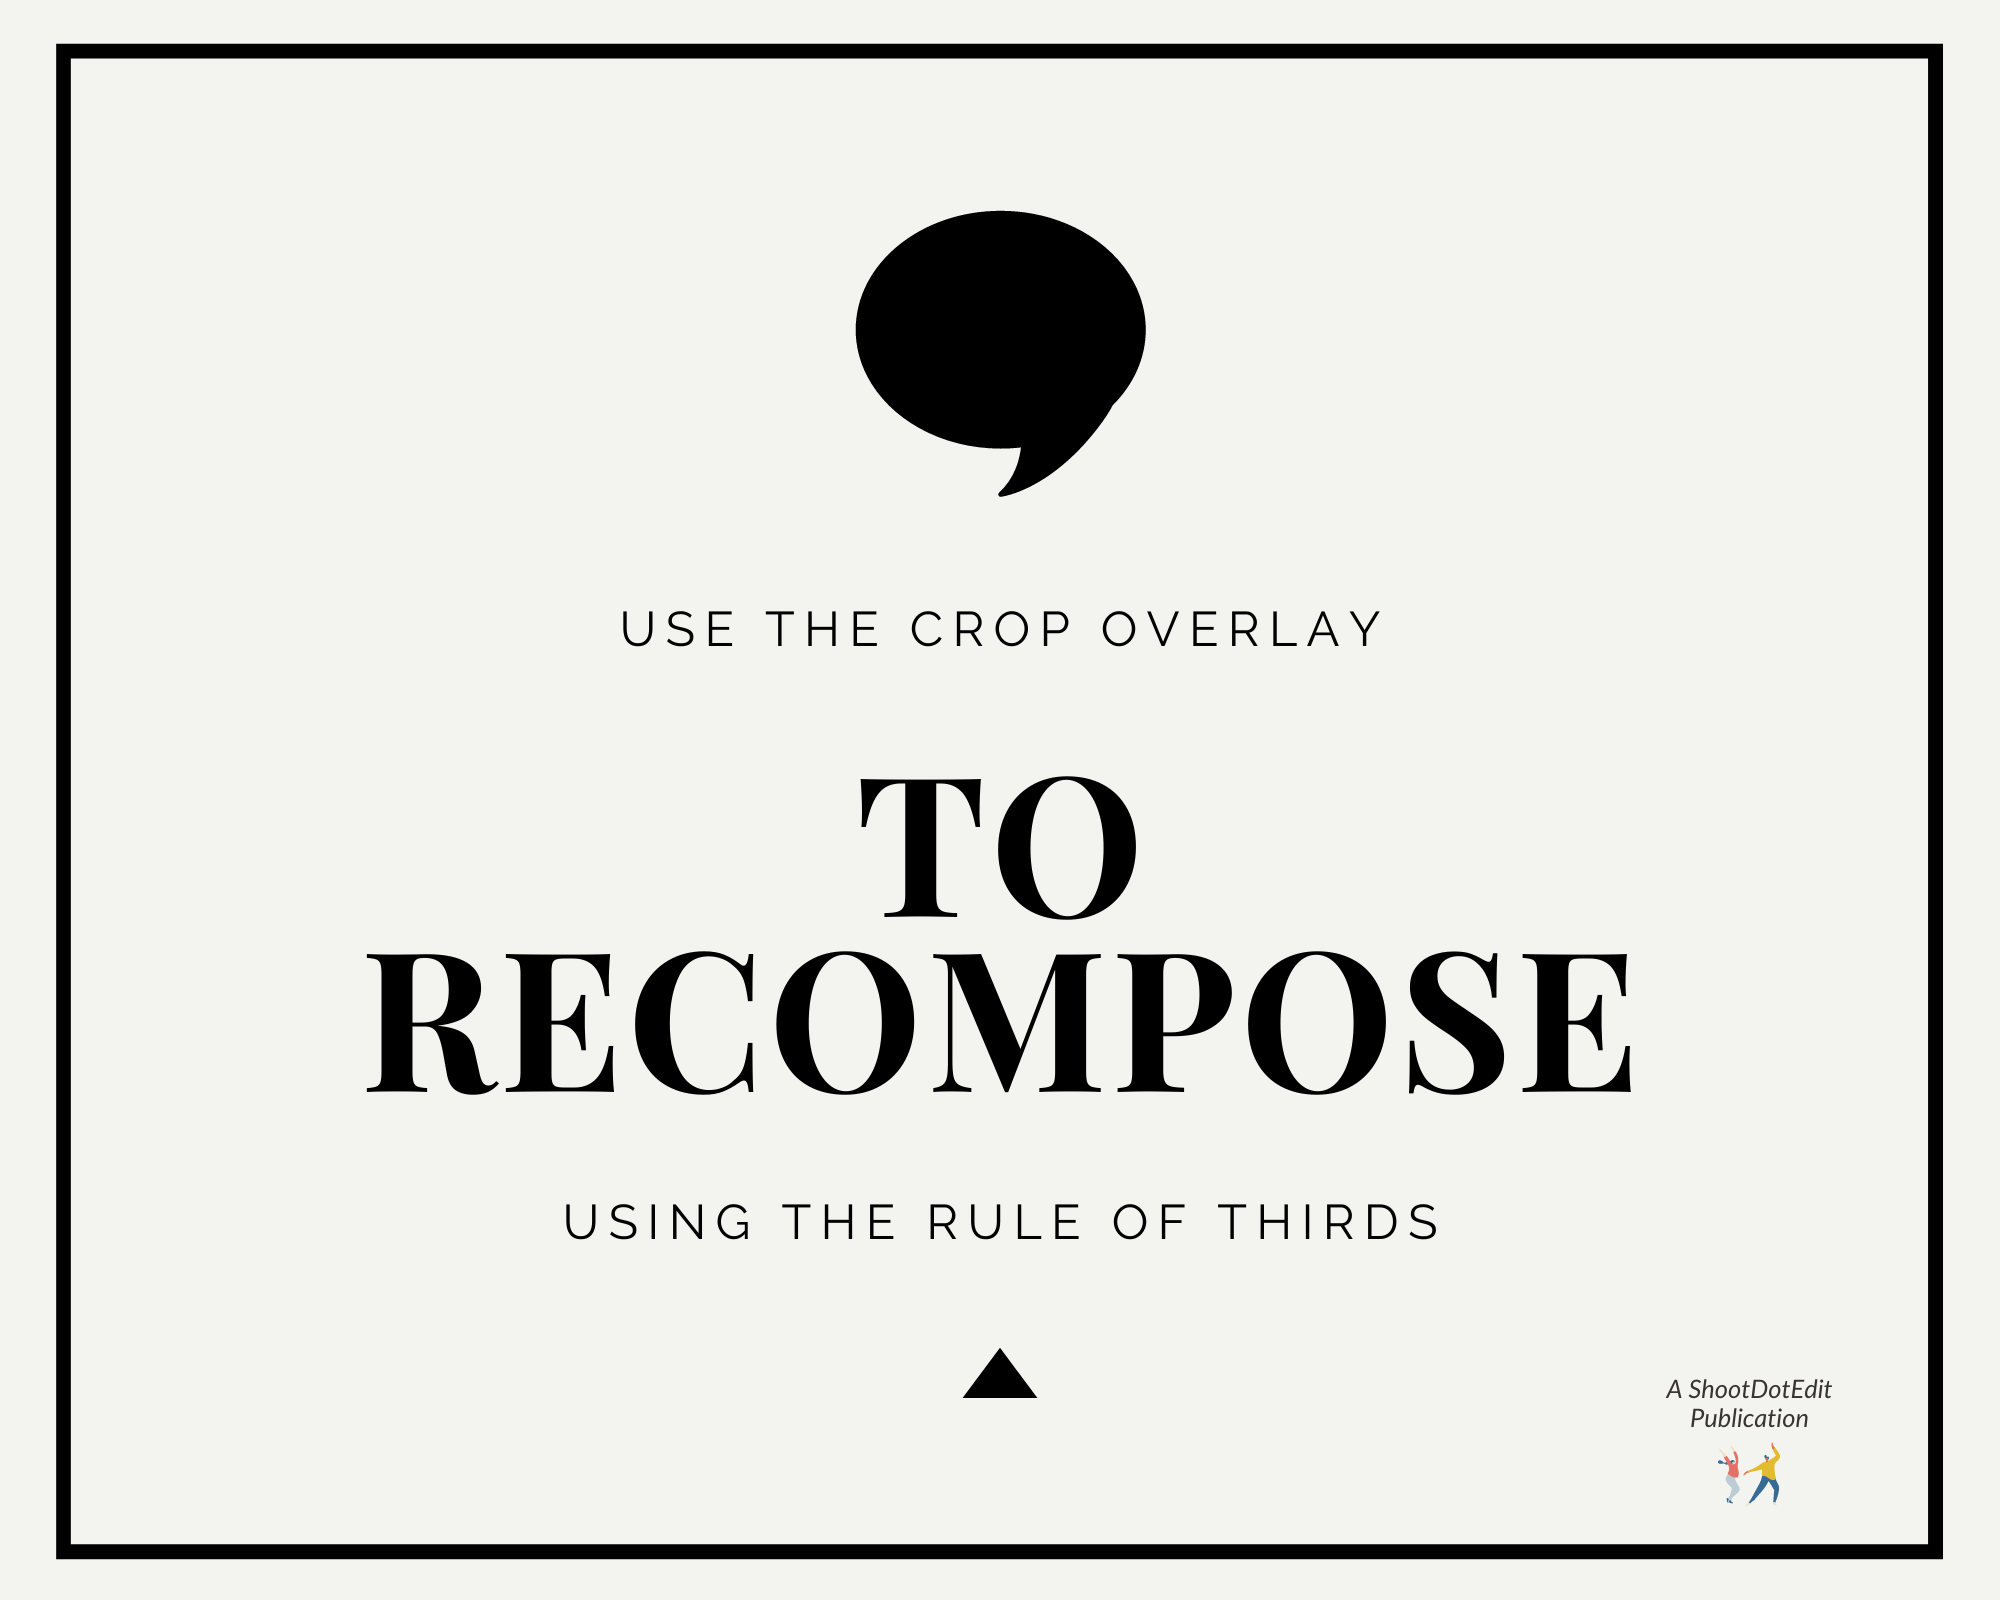 Infographic stating use the crop overlay to recompose using the rule of thirds